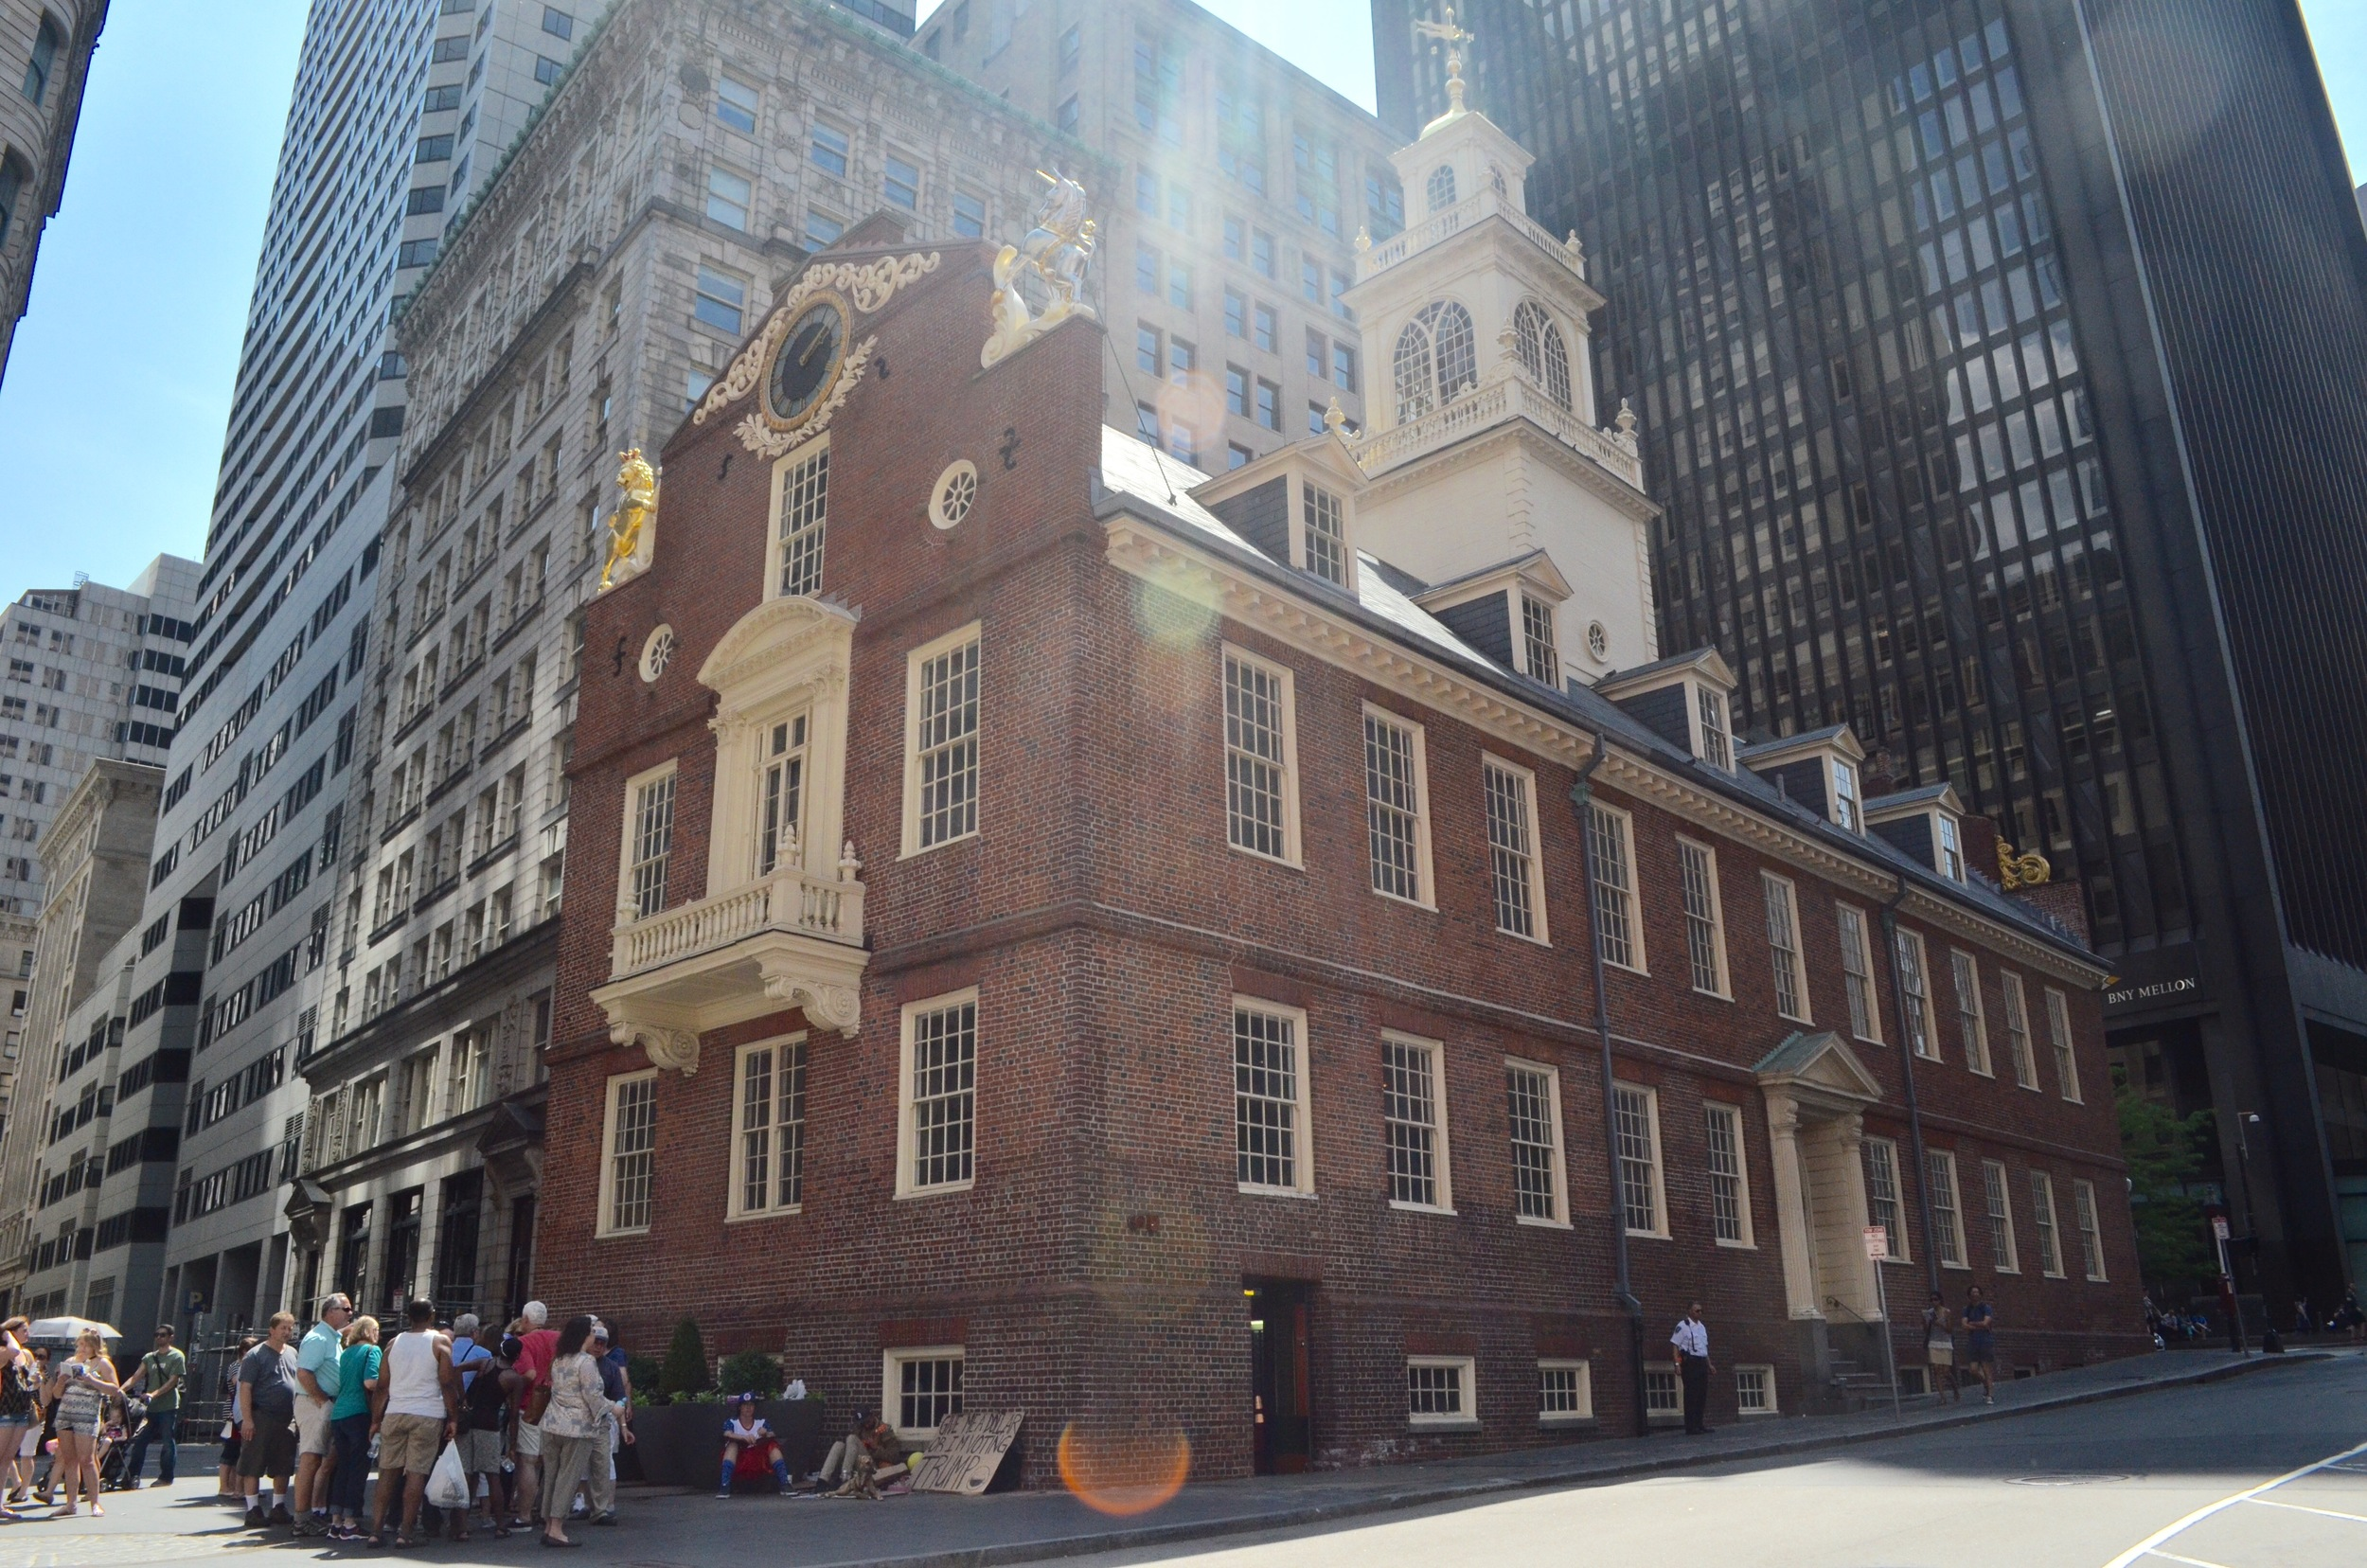 Above is the former State House and the square in front of it is the site of the Boston Massacre.